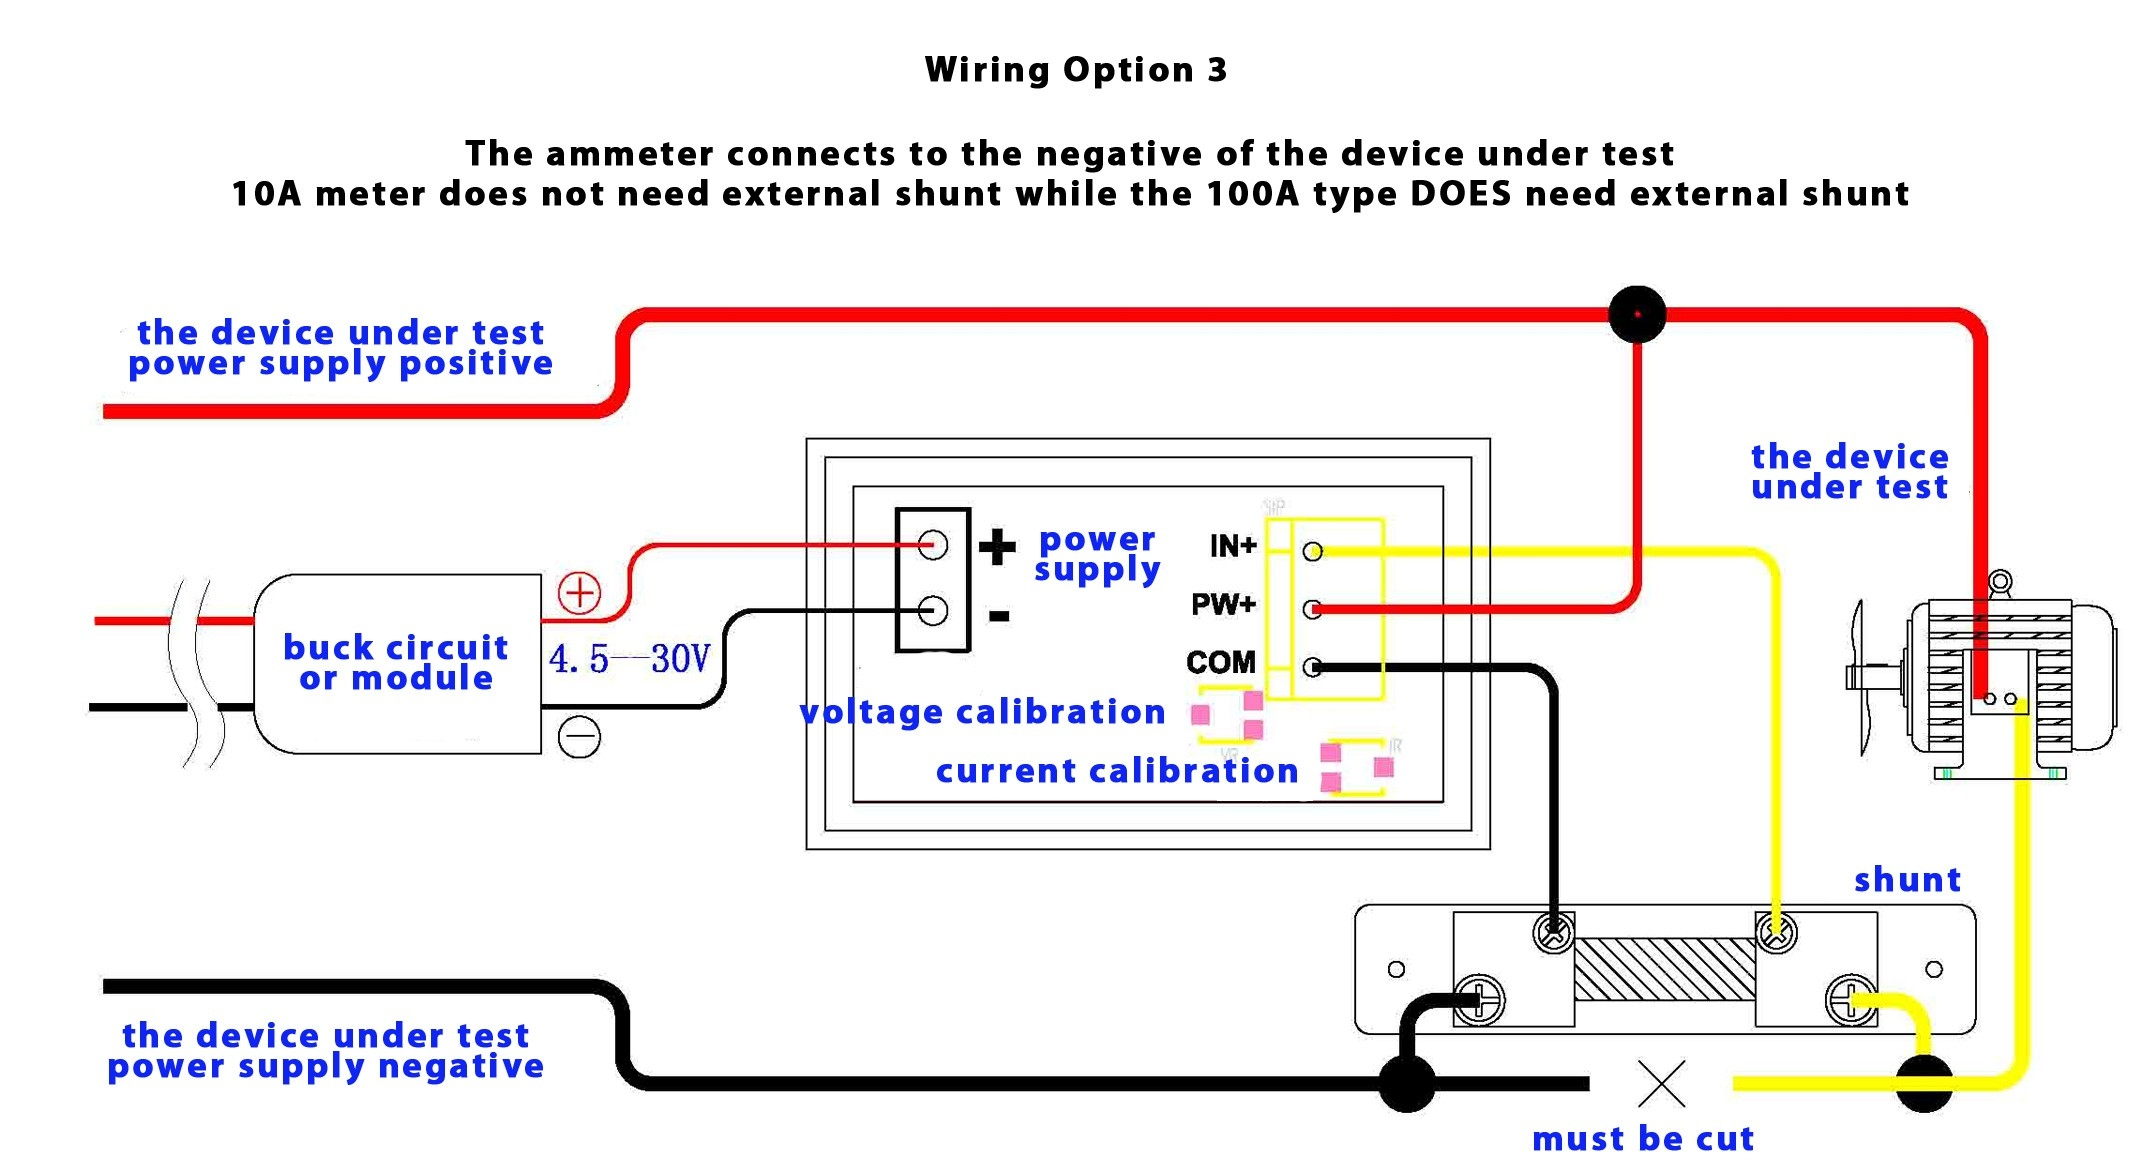 volt amp meter wiring diagram Download-Digital Volt Amp Meter Wiring Diagram Lovely Digital Multimeter Circuit Using Icl7107 the Full Diagram 10-s